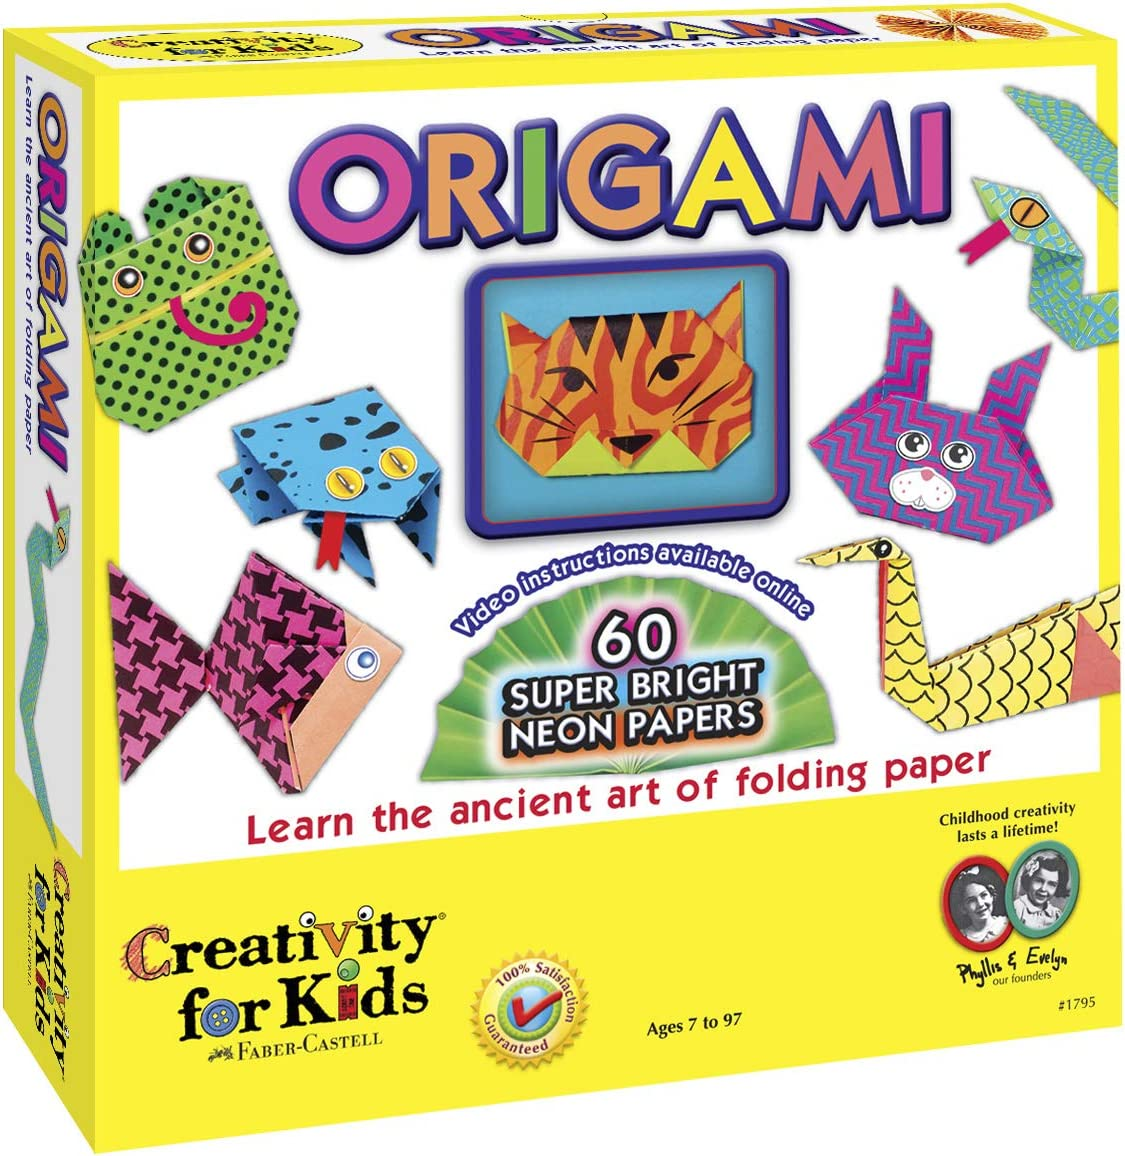 Top 10 Best Craft Kits For Kids (2020 Reviews & Buying Guide) 9